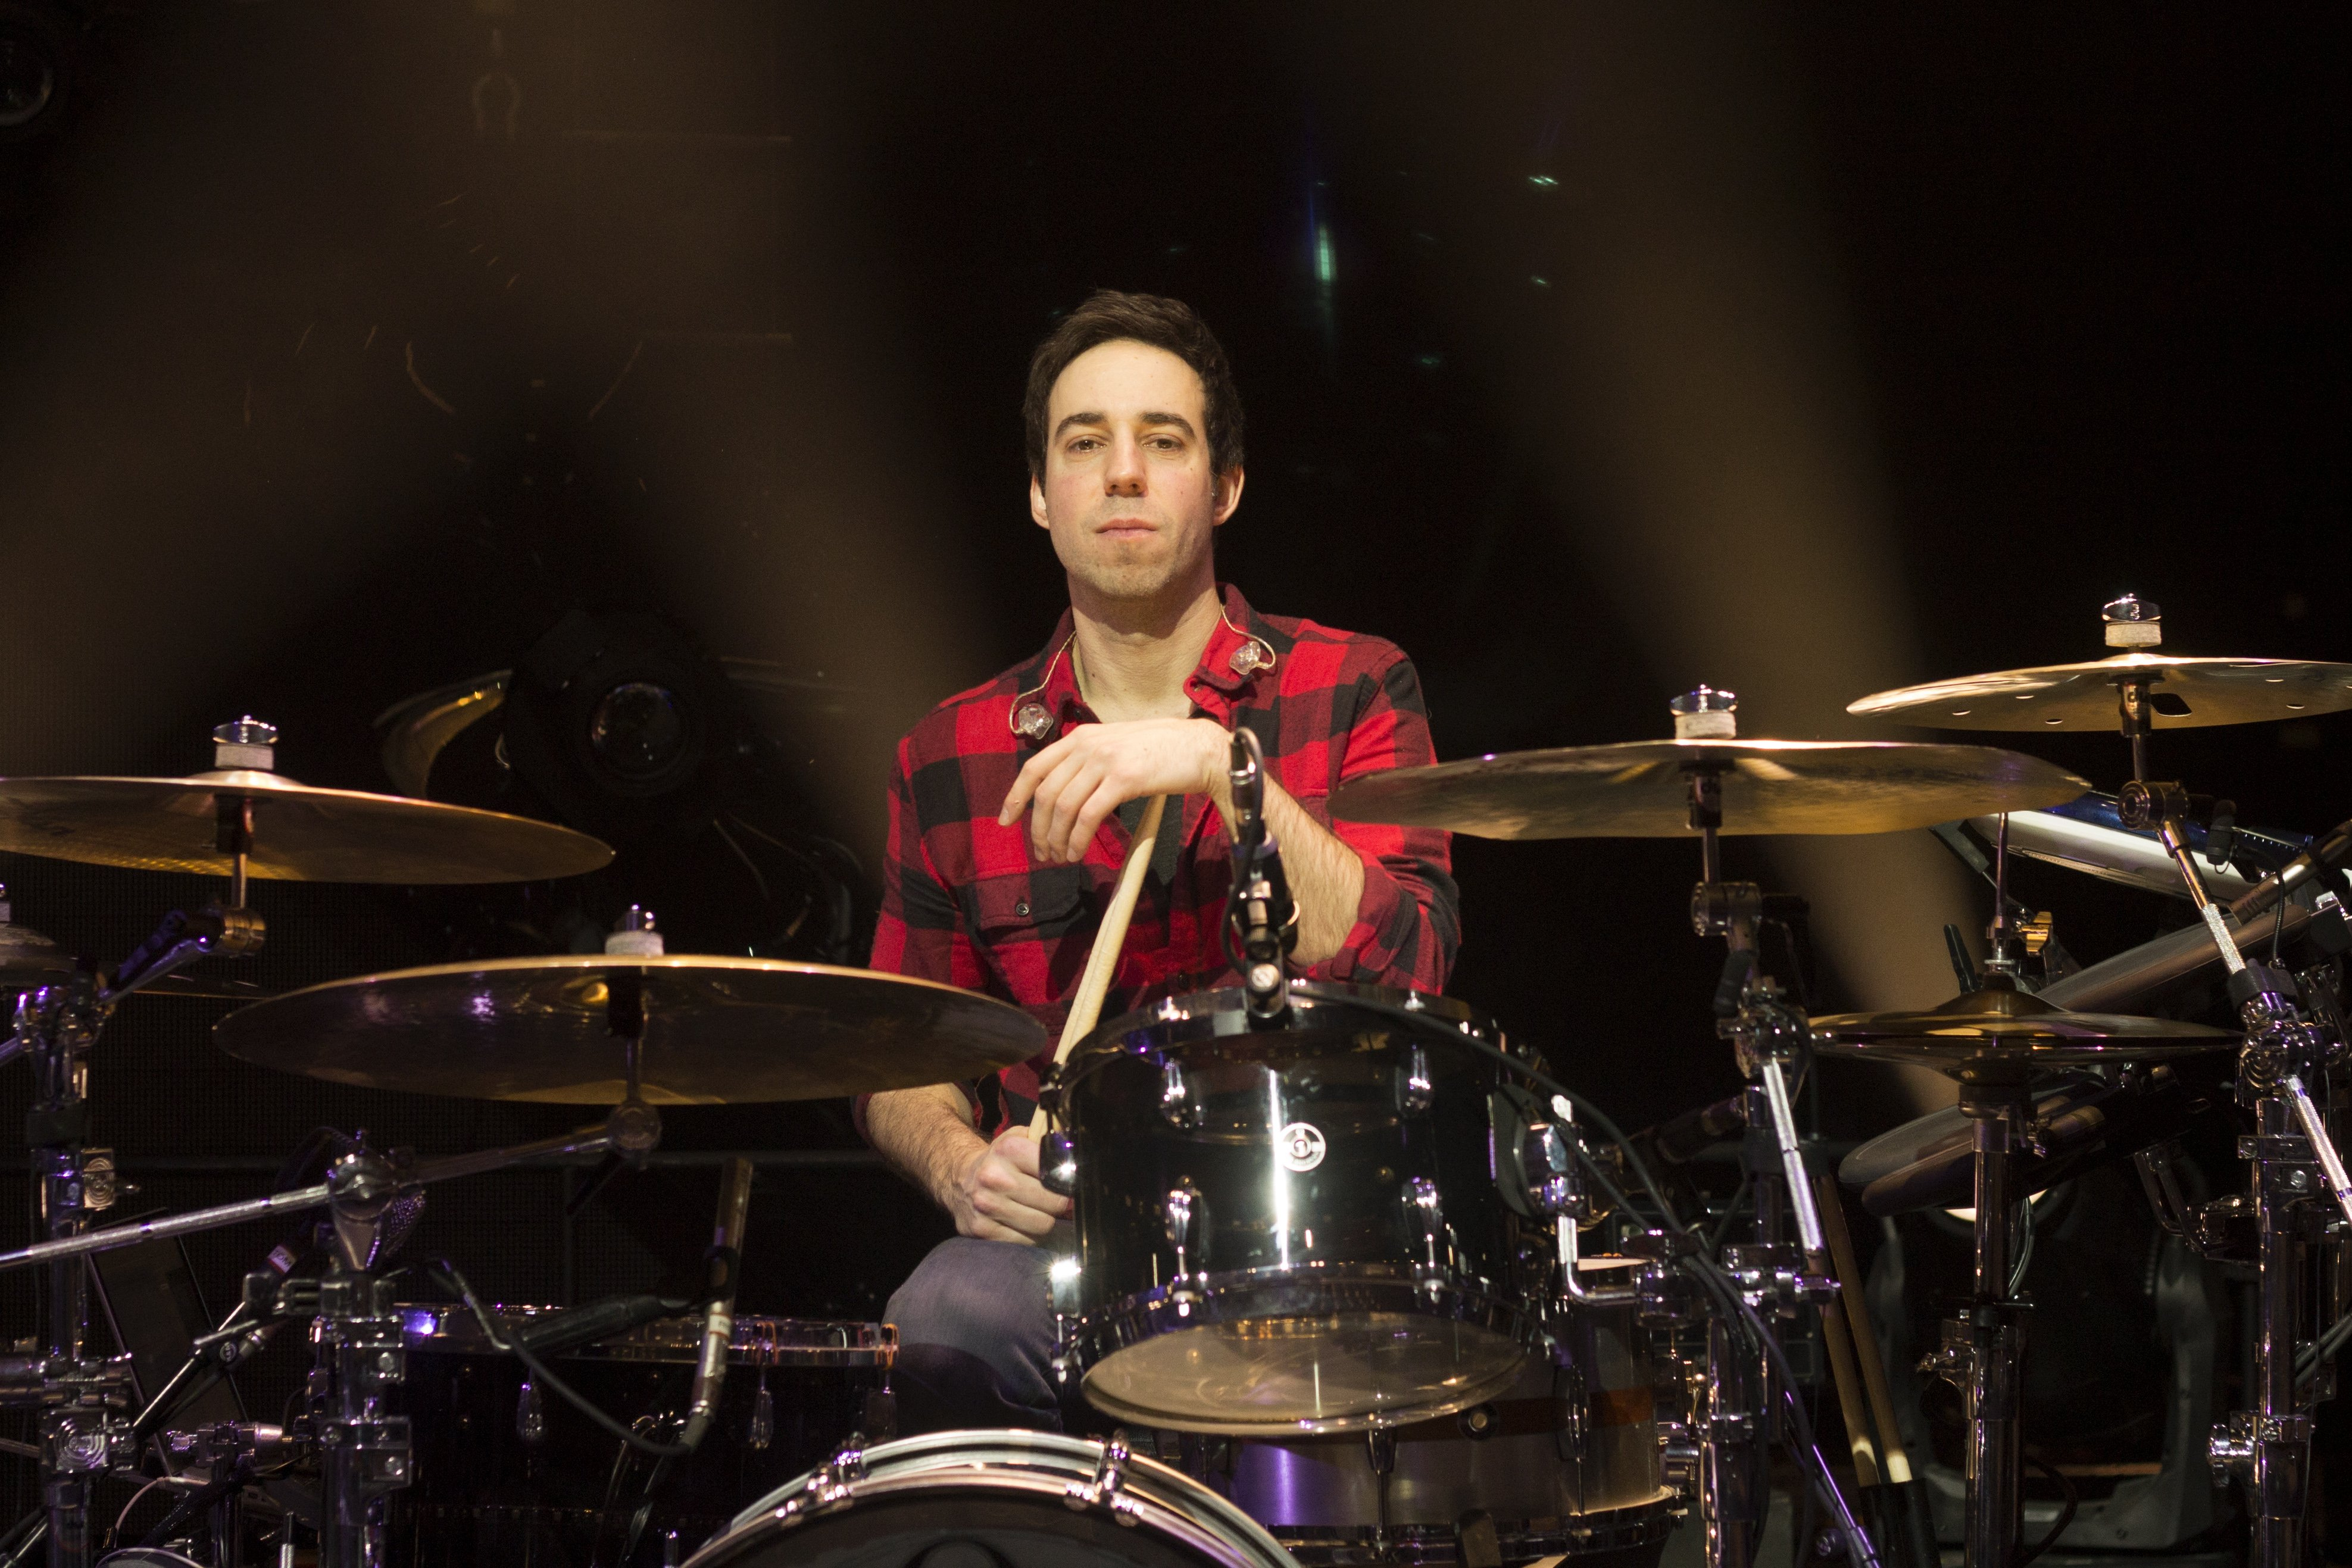 drummer adam marcello katy perry american idol